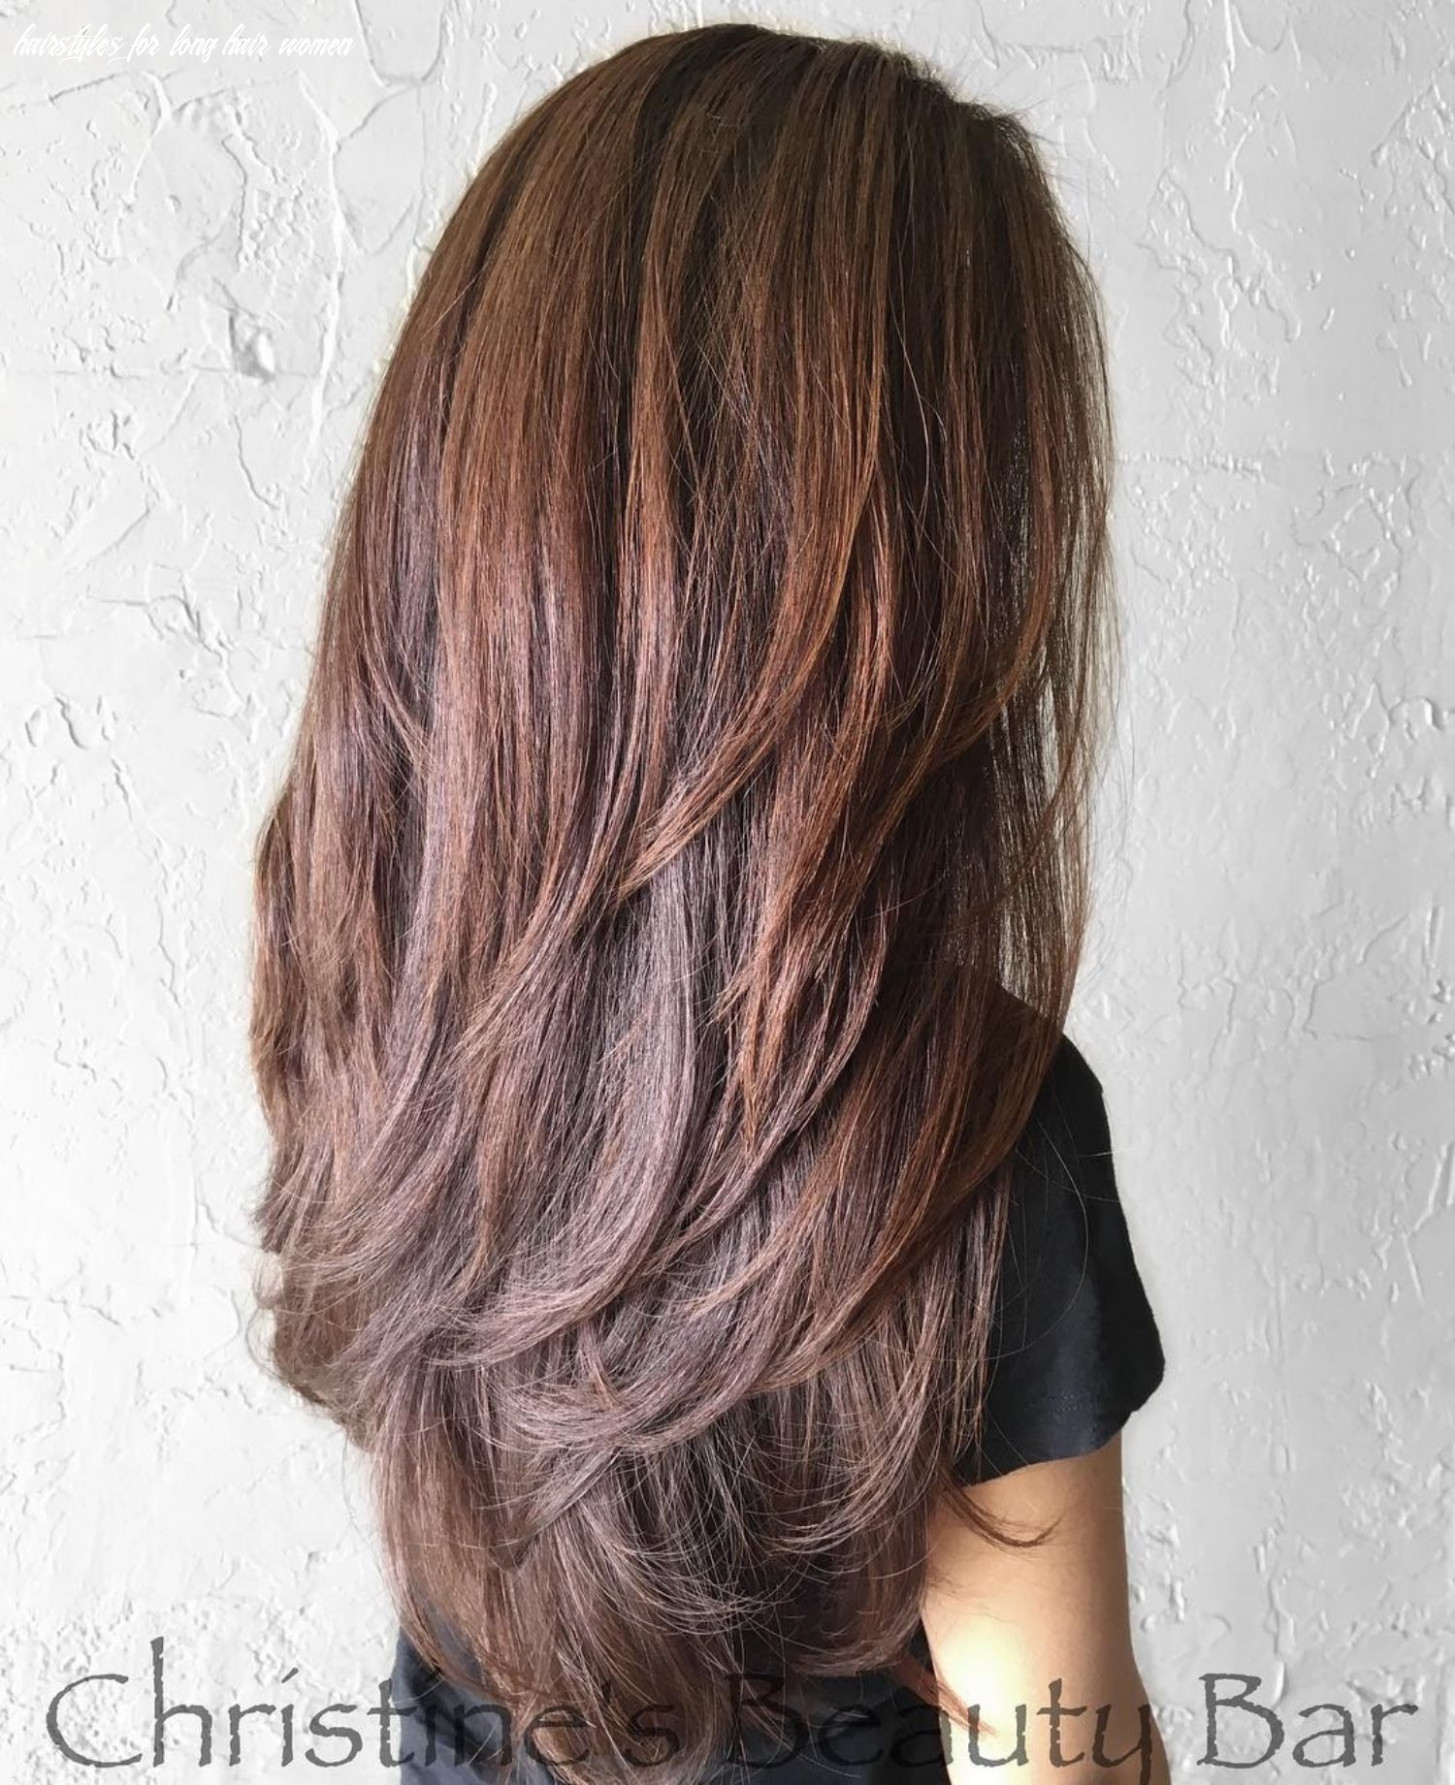 Pin on hair hairstyles for long hair women